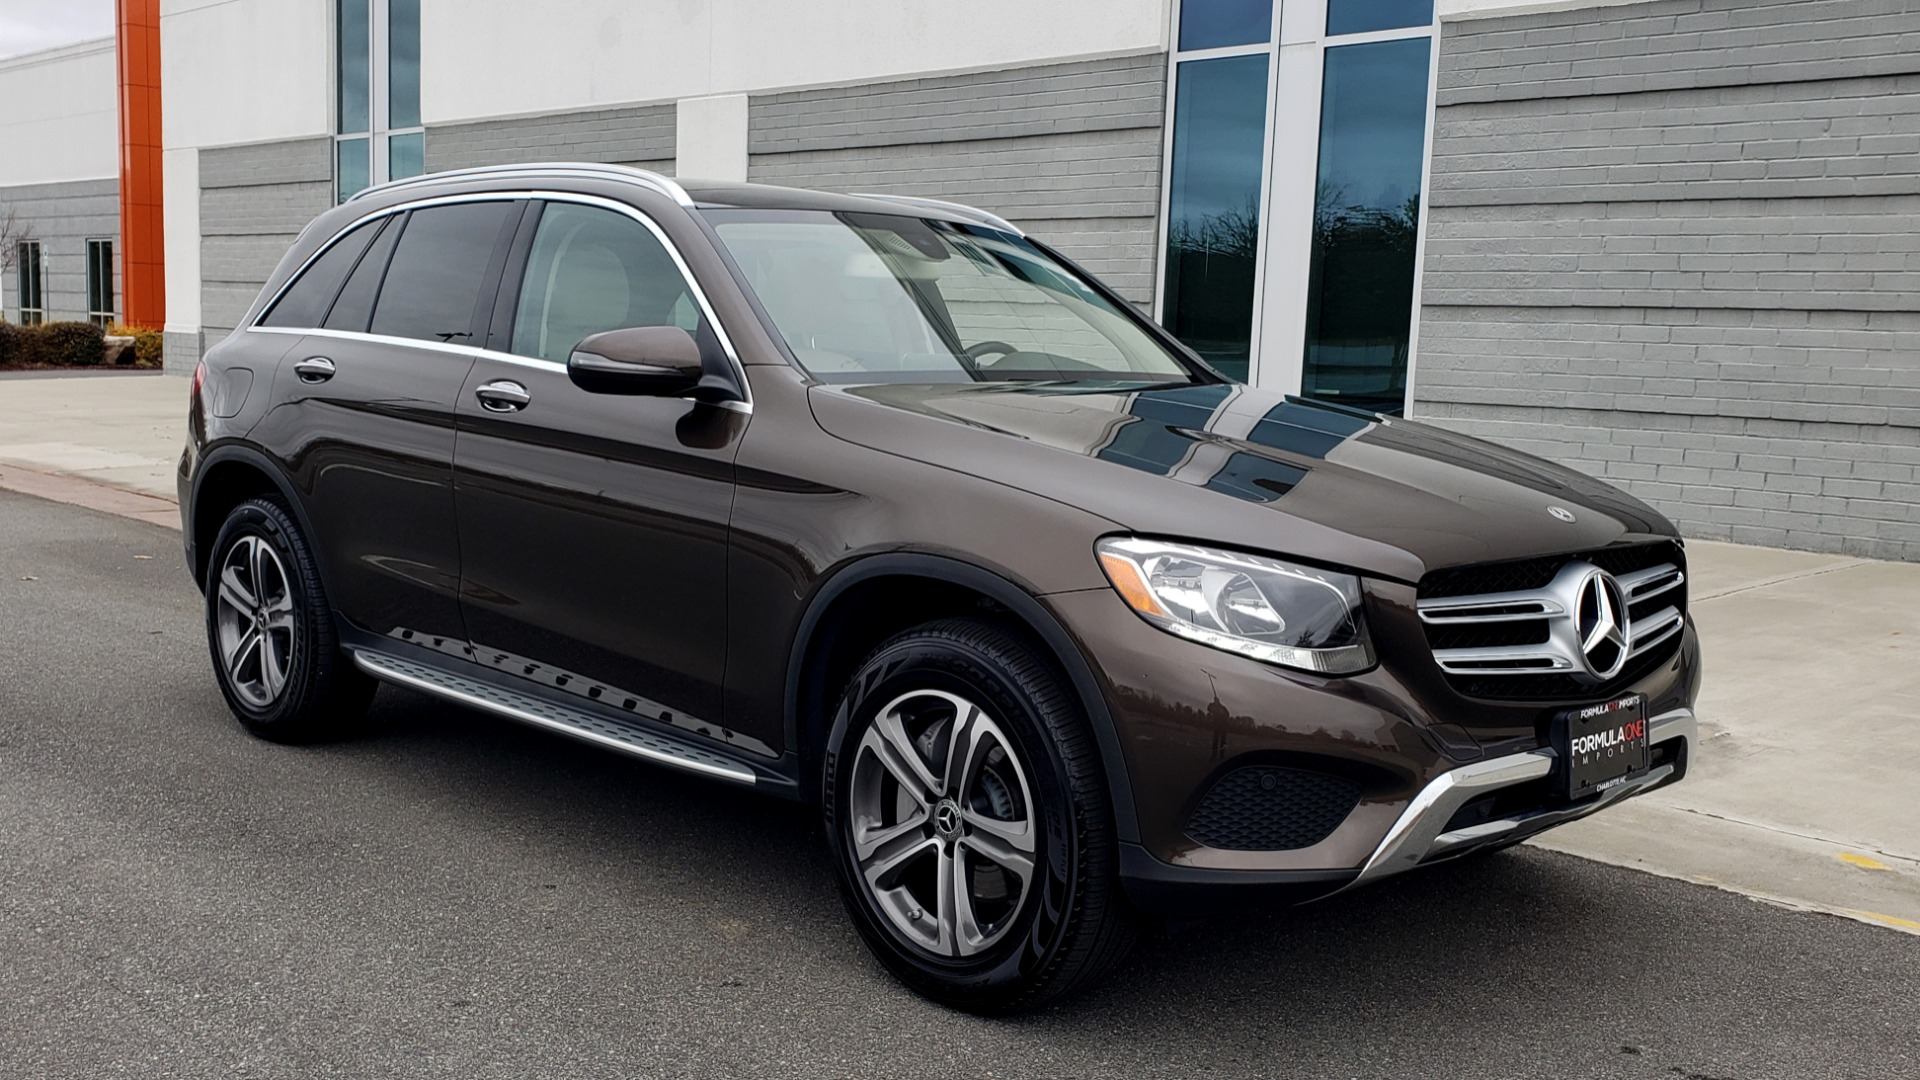 Used 2018 Mercedes-Benz GLC 300 4MATIC / PREM PKG / MULTIMEDIA / PANO-ROOF / BURMESTER for sale $33,995 at Formula Imports in Charlotte NC 28227 4